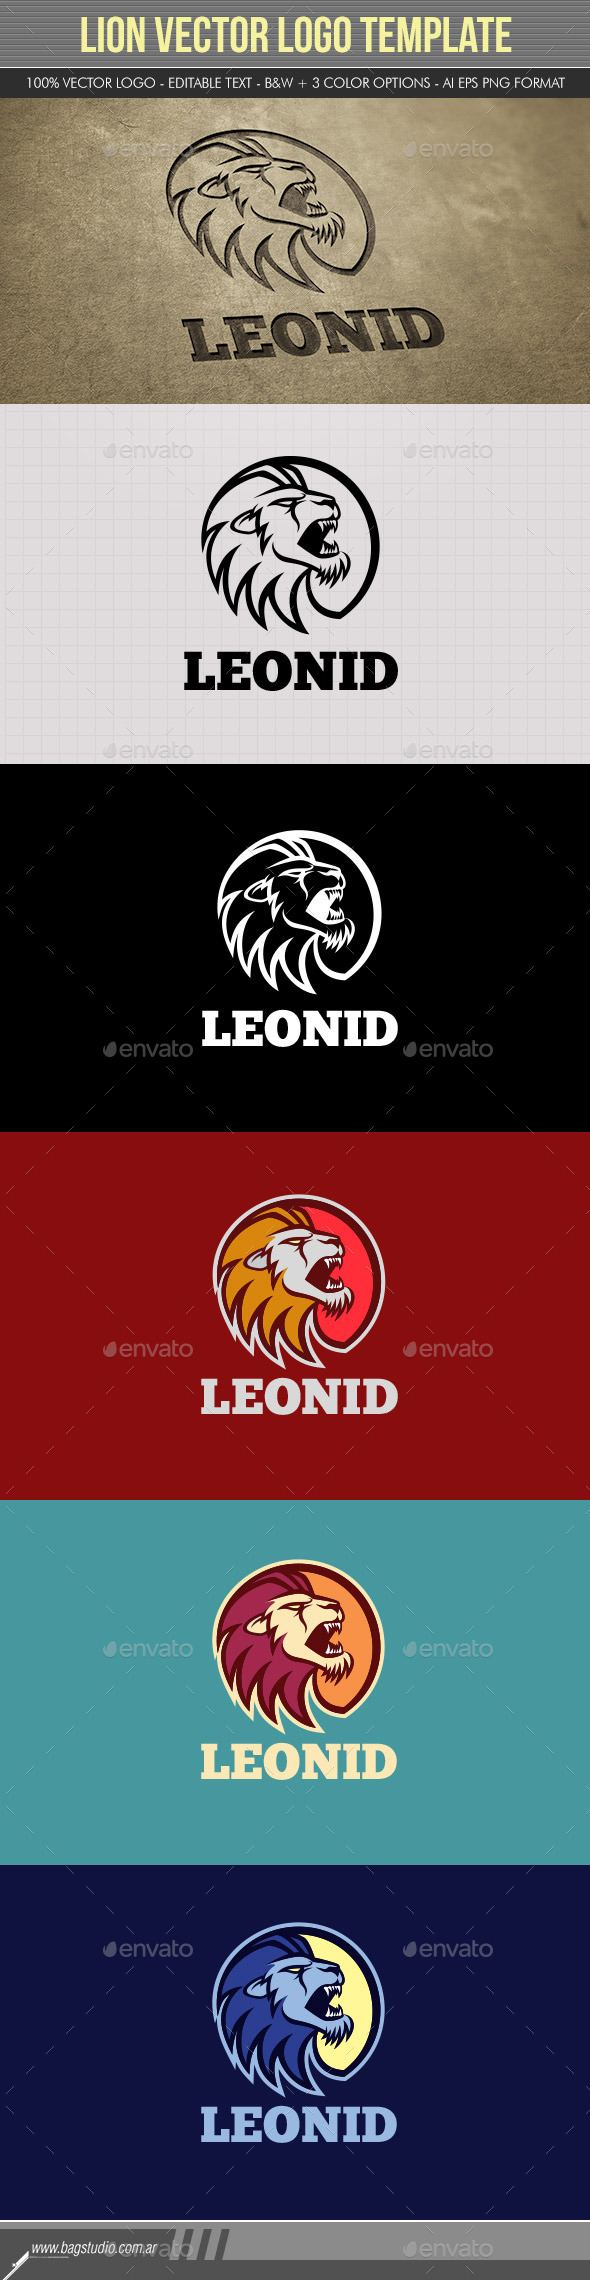 GraphicRiver Lion Vector Logo Template 11322663